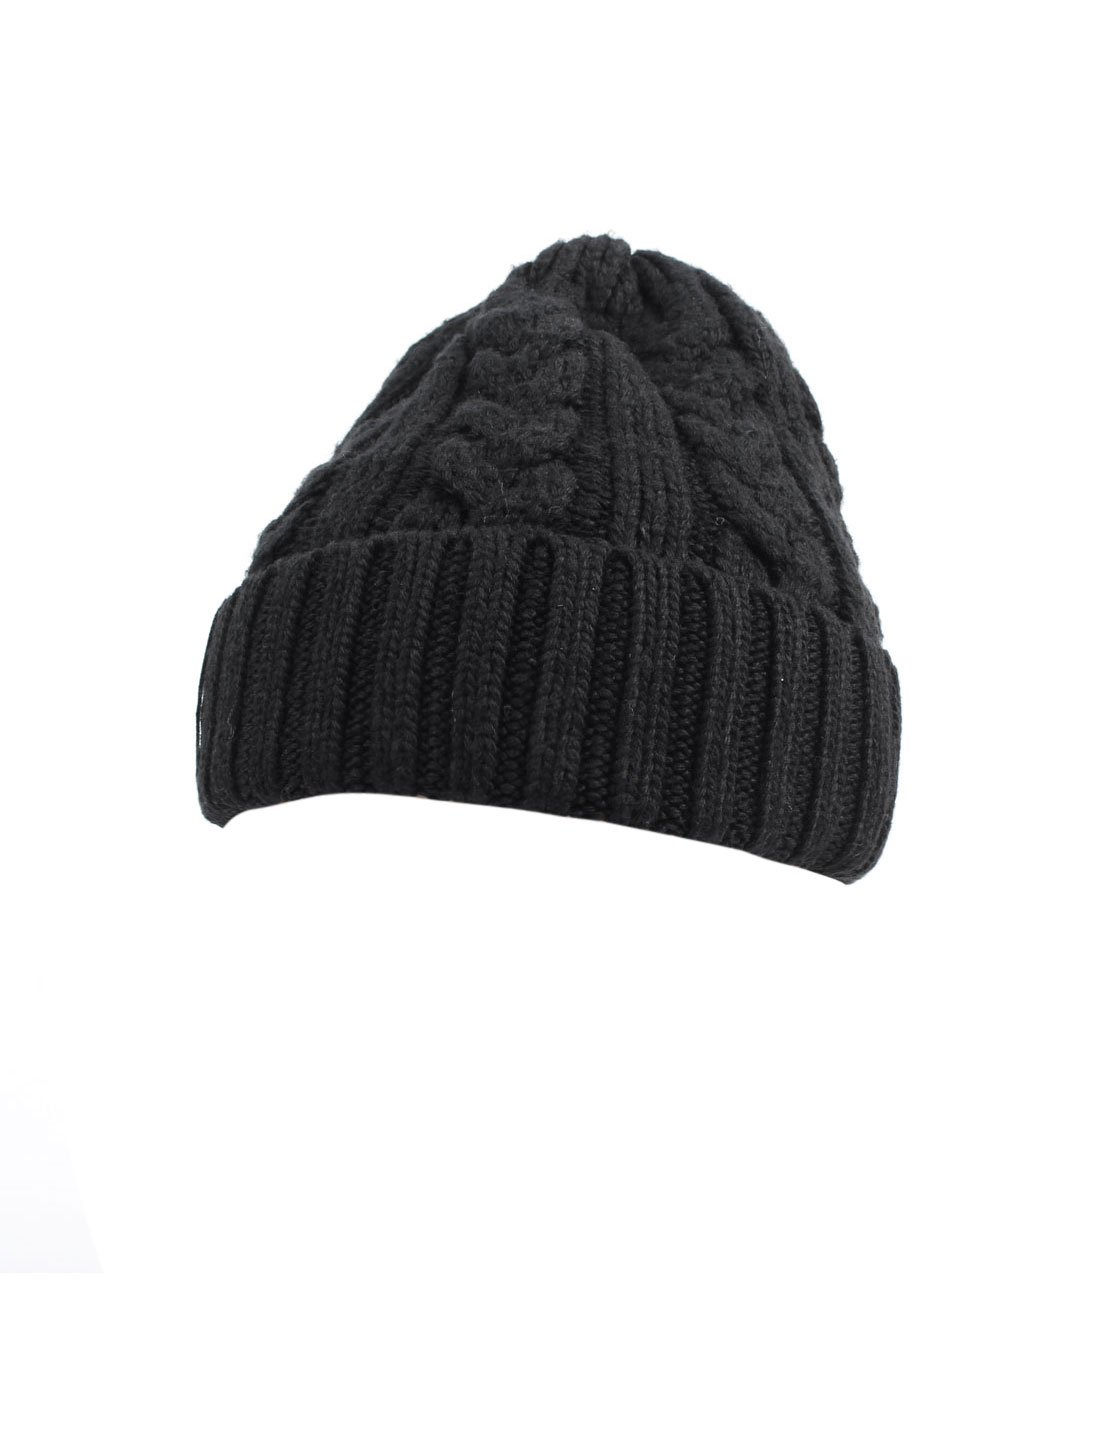 Women Winter Warm Ribbed Braided Acrylic Beanie Hat Cap Black